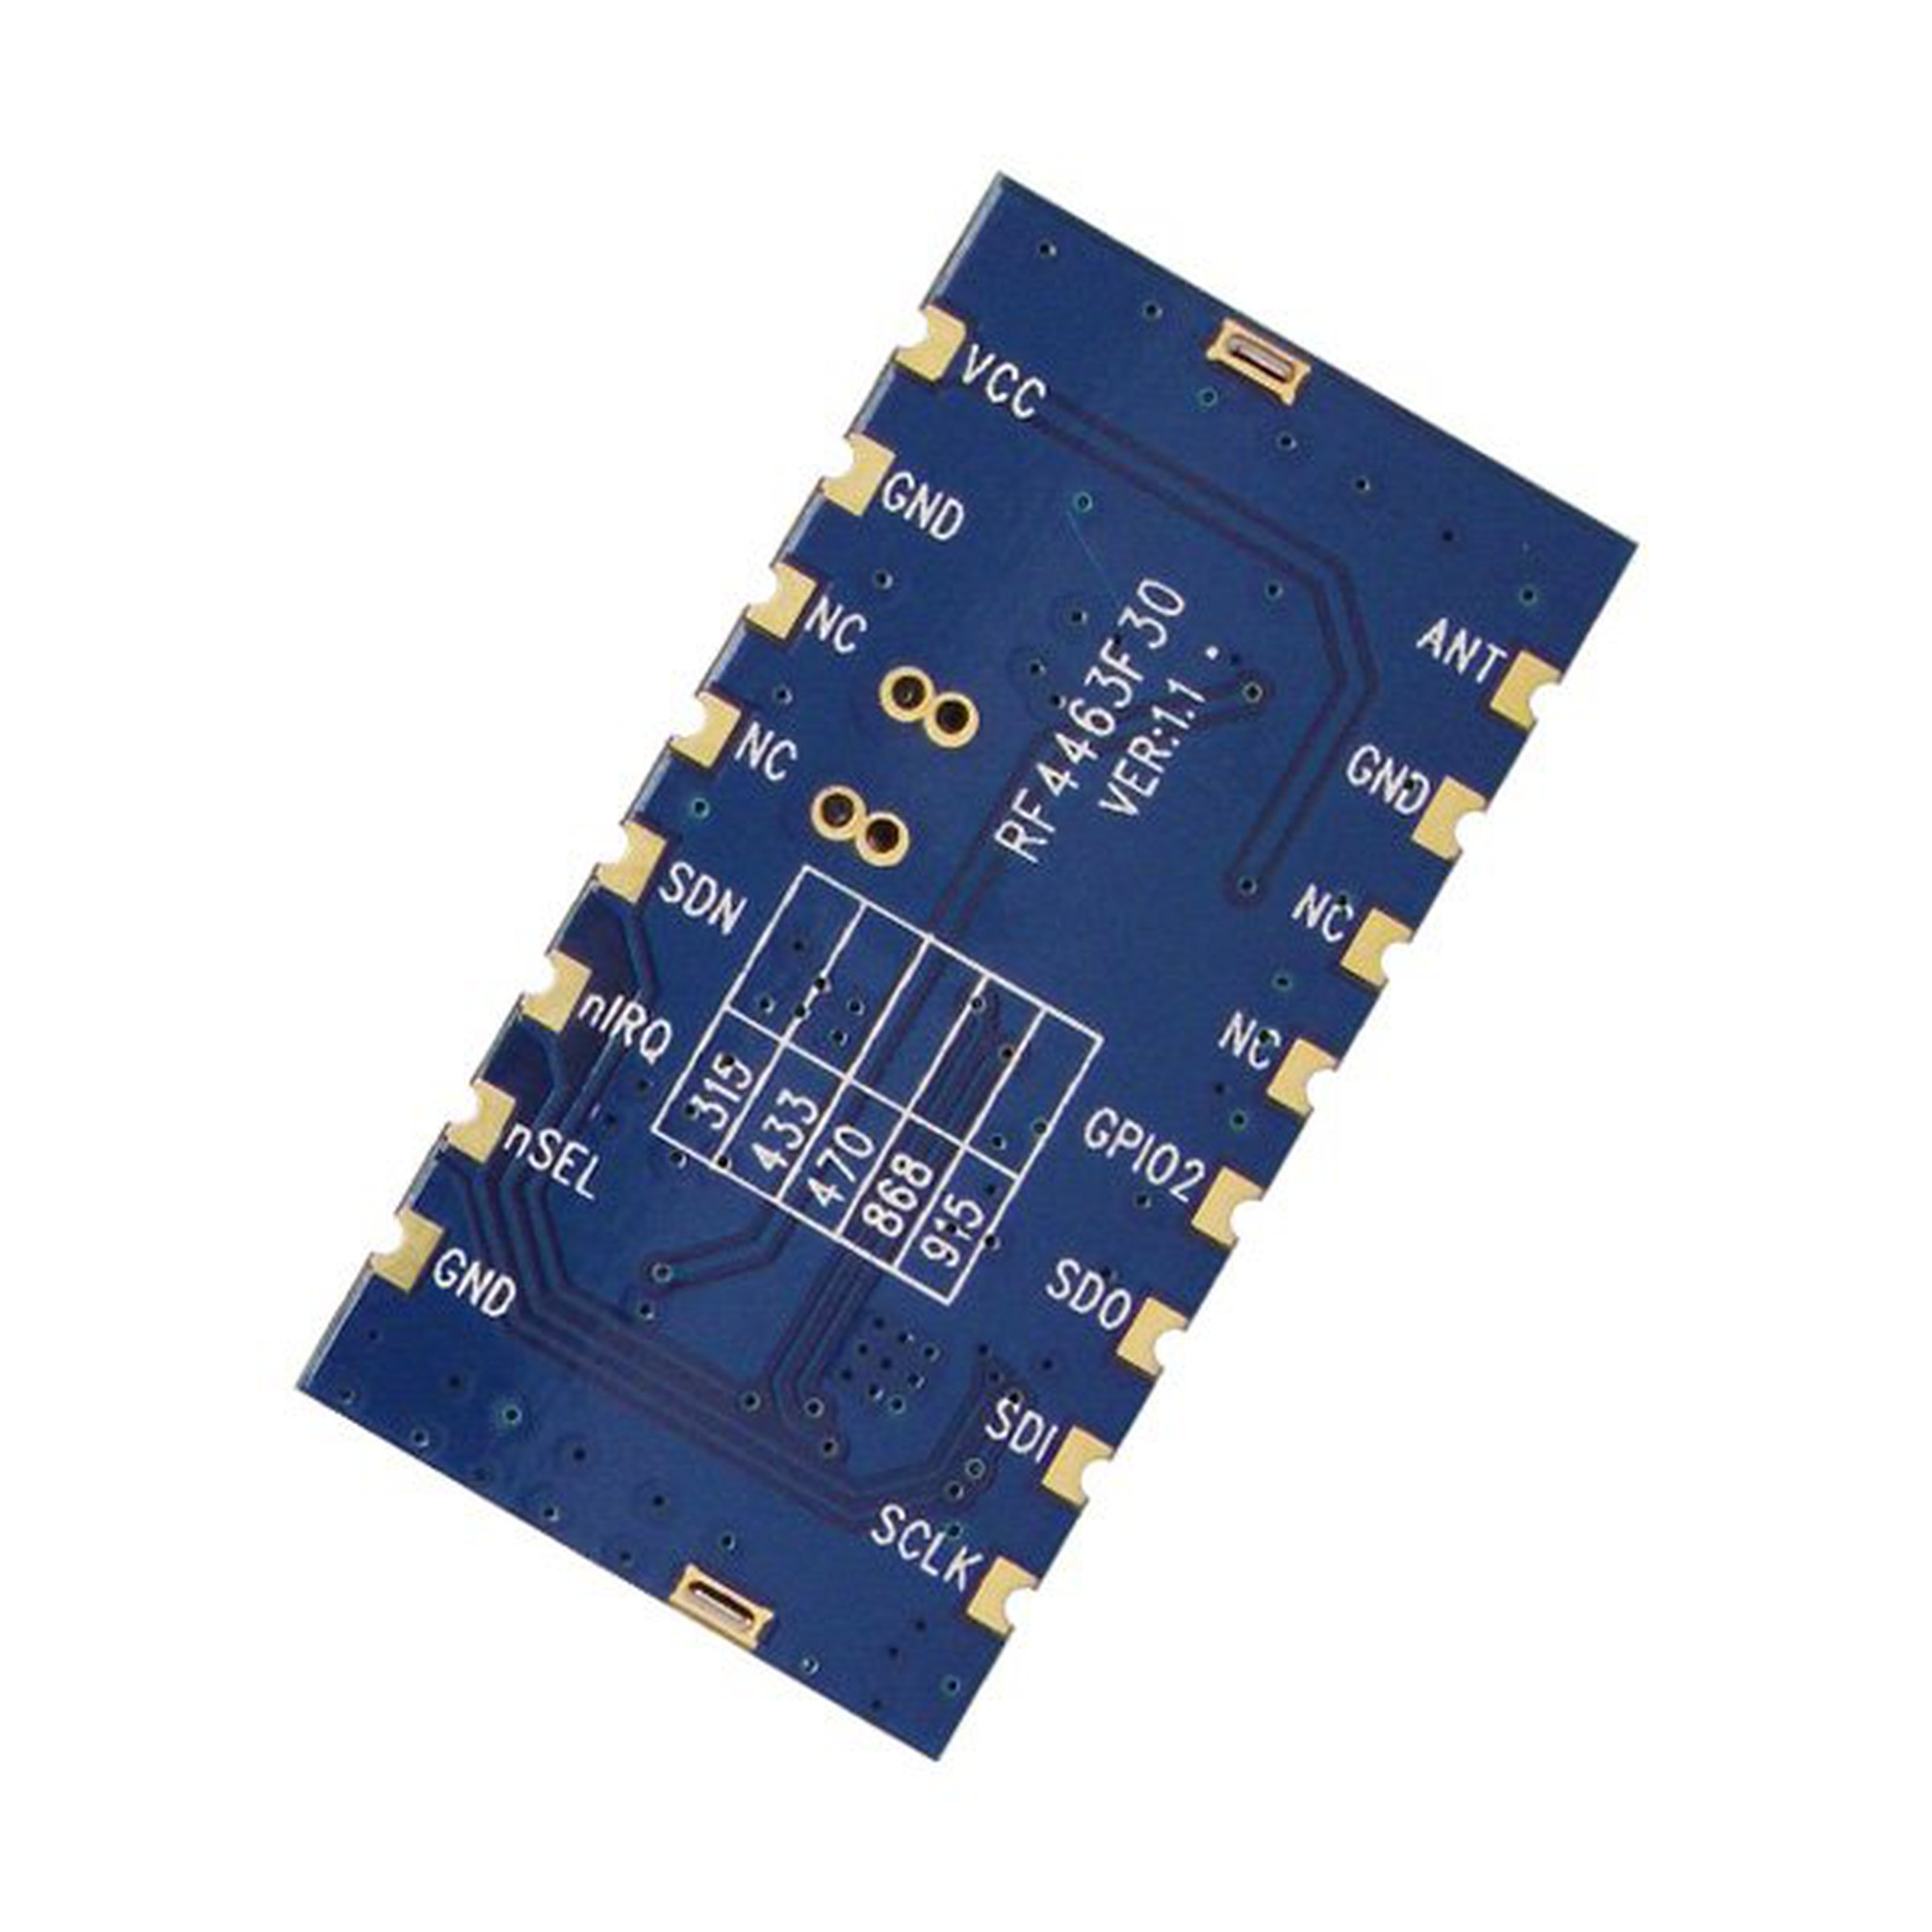 Rf4463f30 1w Wireless Transceiver Module From Nicerf On Tindie 915mhz Ism 1